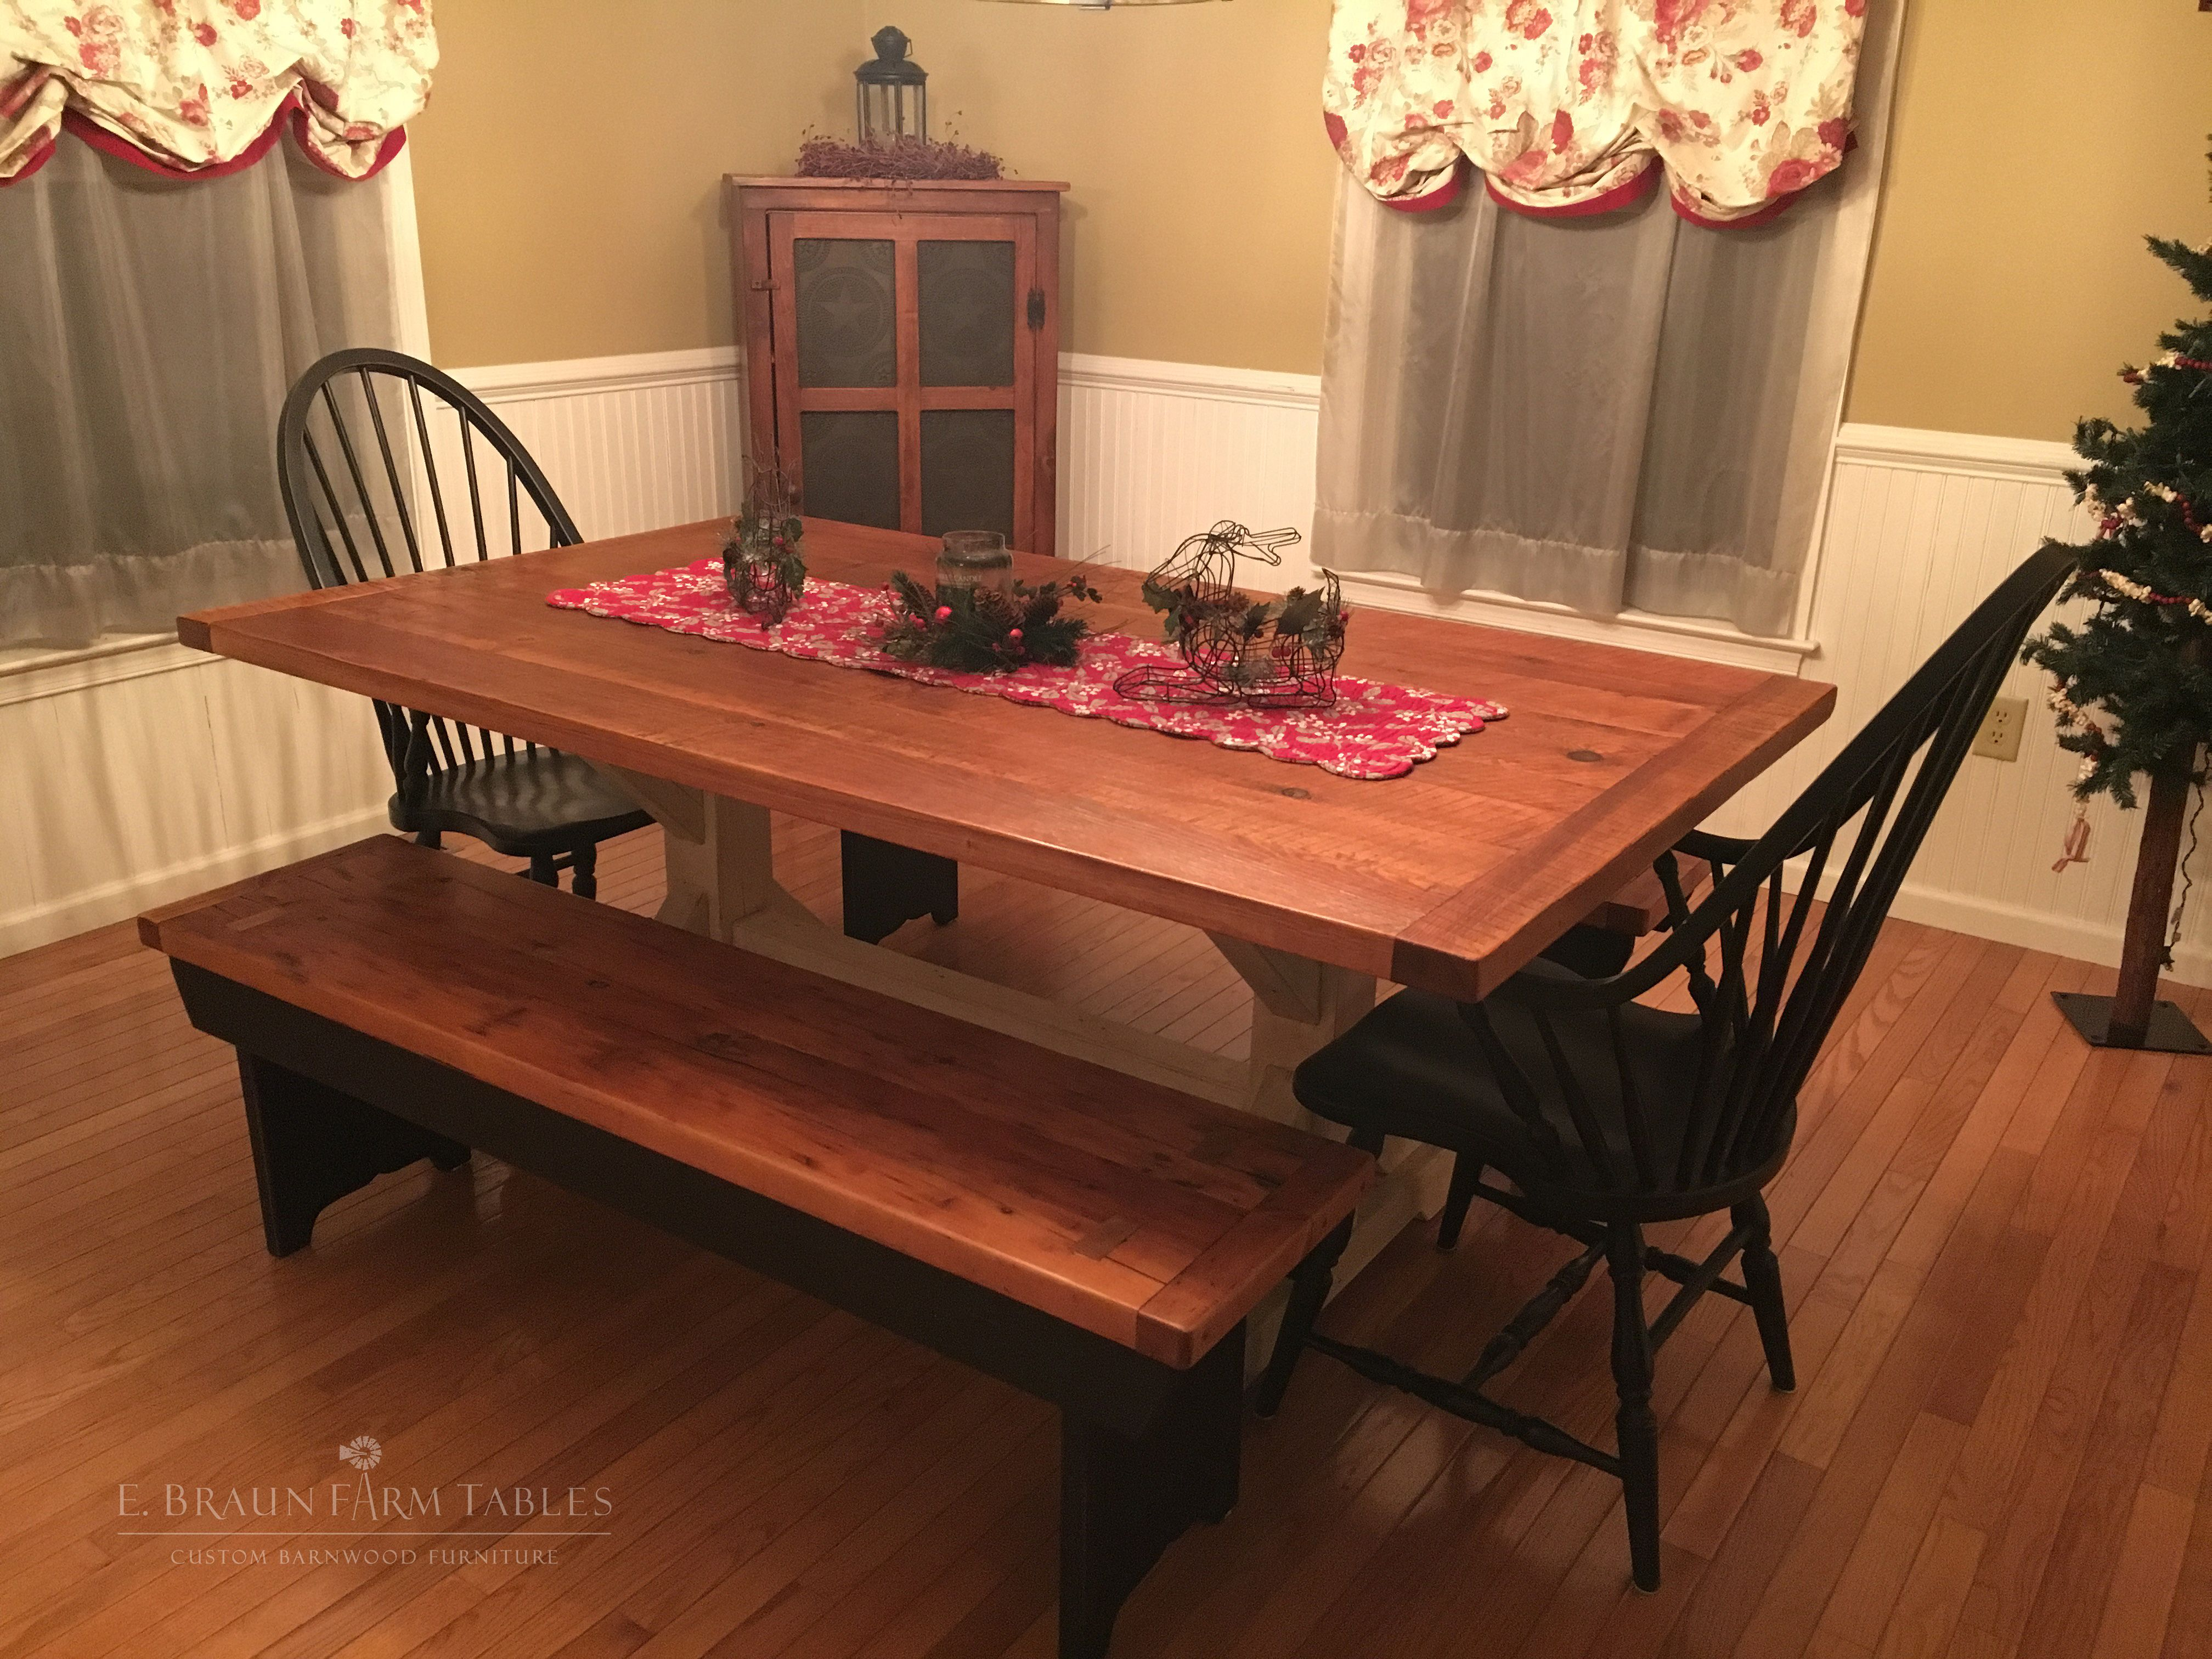 Crossbuck Trestle Farm Table Is Handcrafted Using Reclaimed Barn Wood White Pine High Windsor ChairsReclaimed WoodFarm TablesDining SetsDining